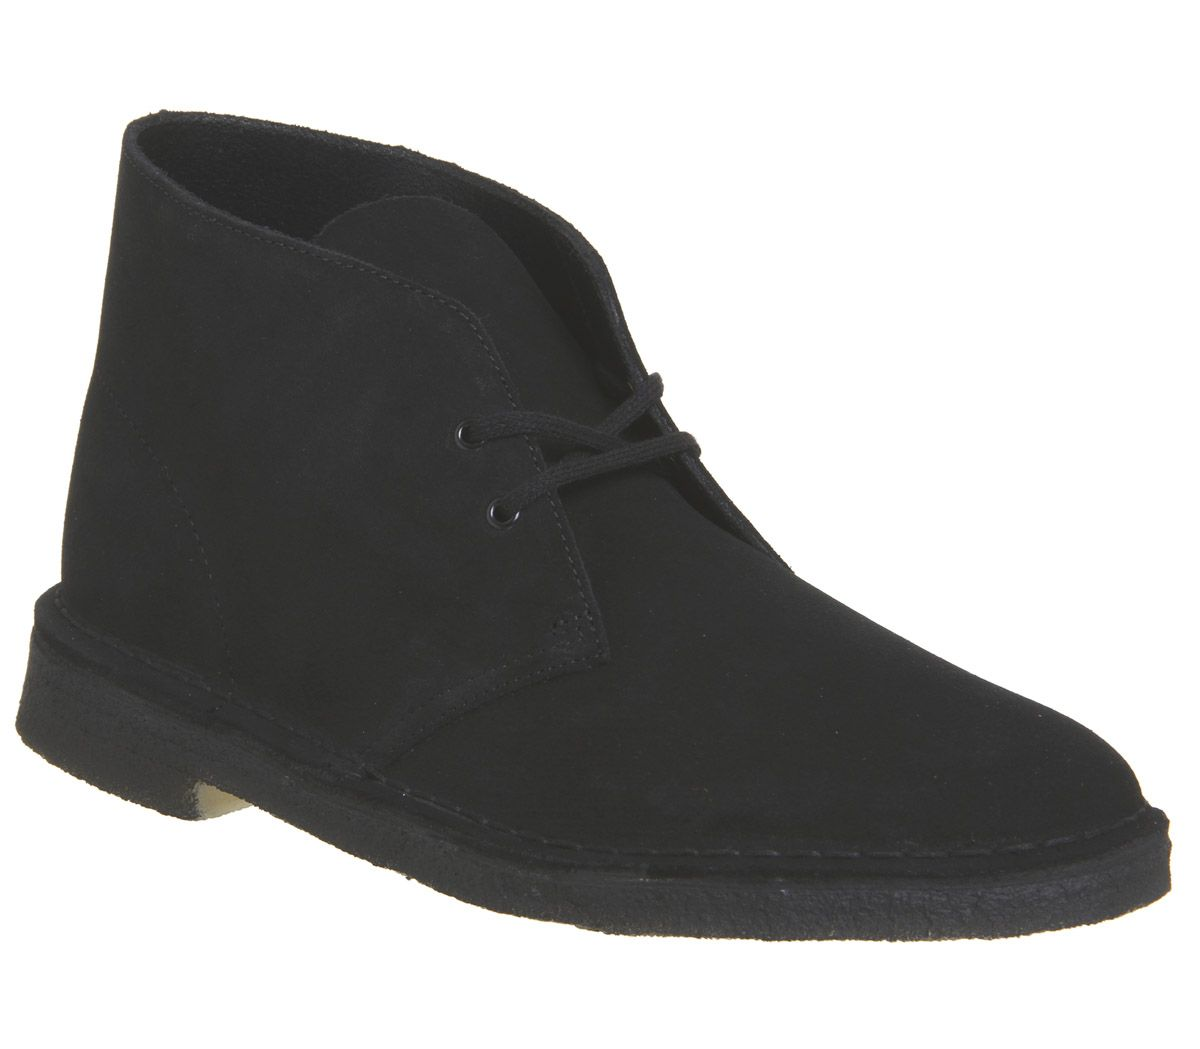 outlet store ac4ed 6ed7a Clarks Originals Desert Boots Black Suede New - Boots